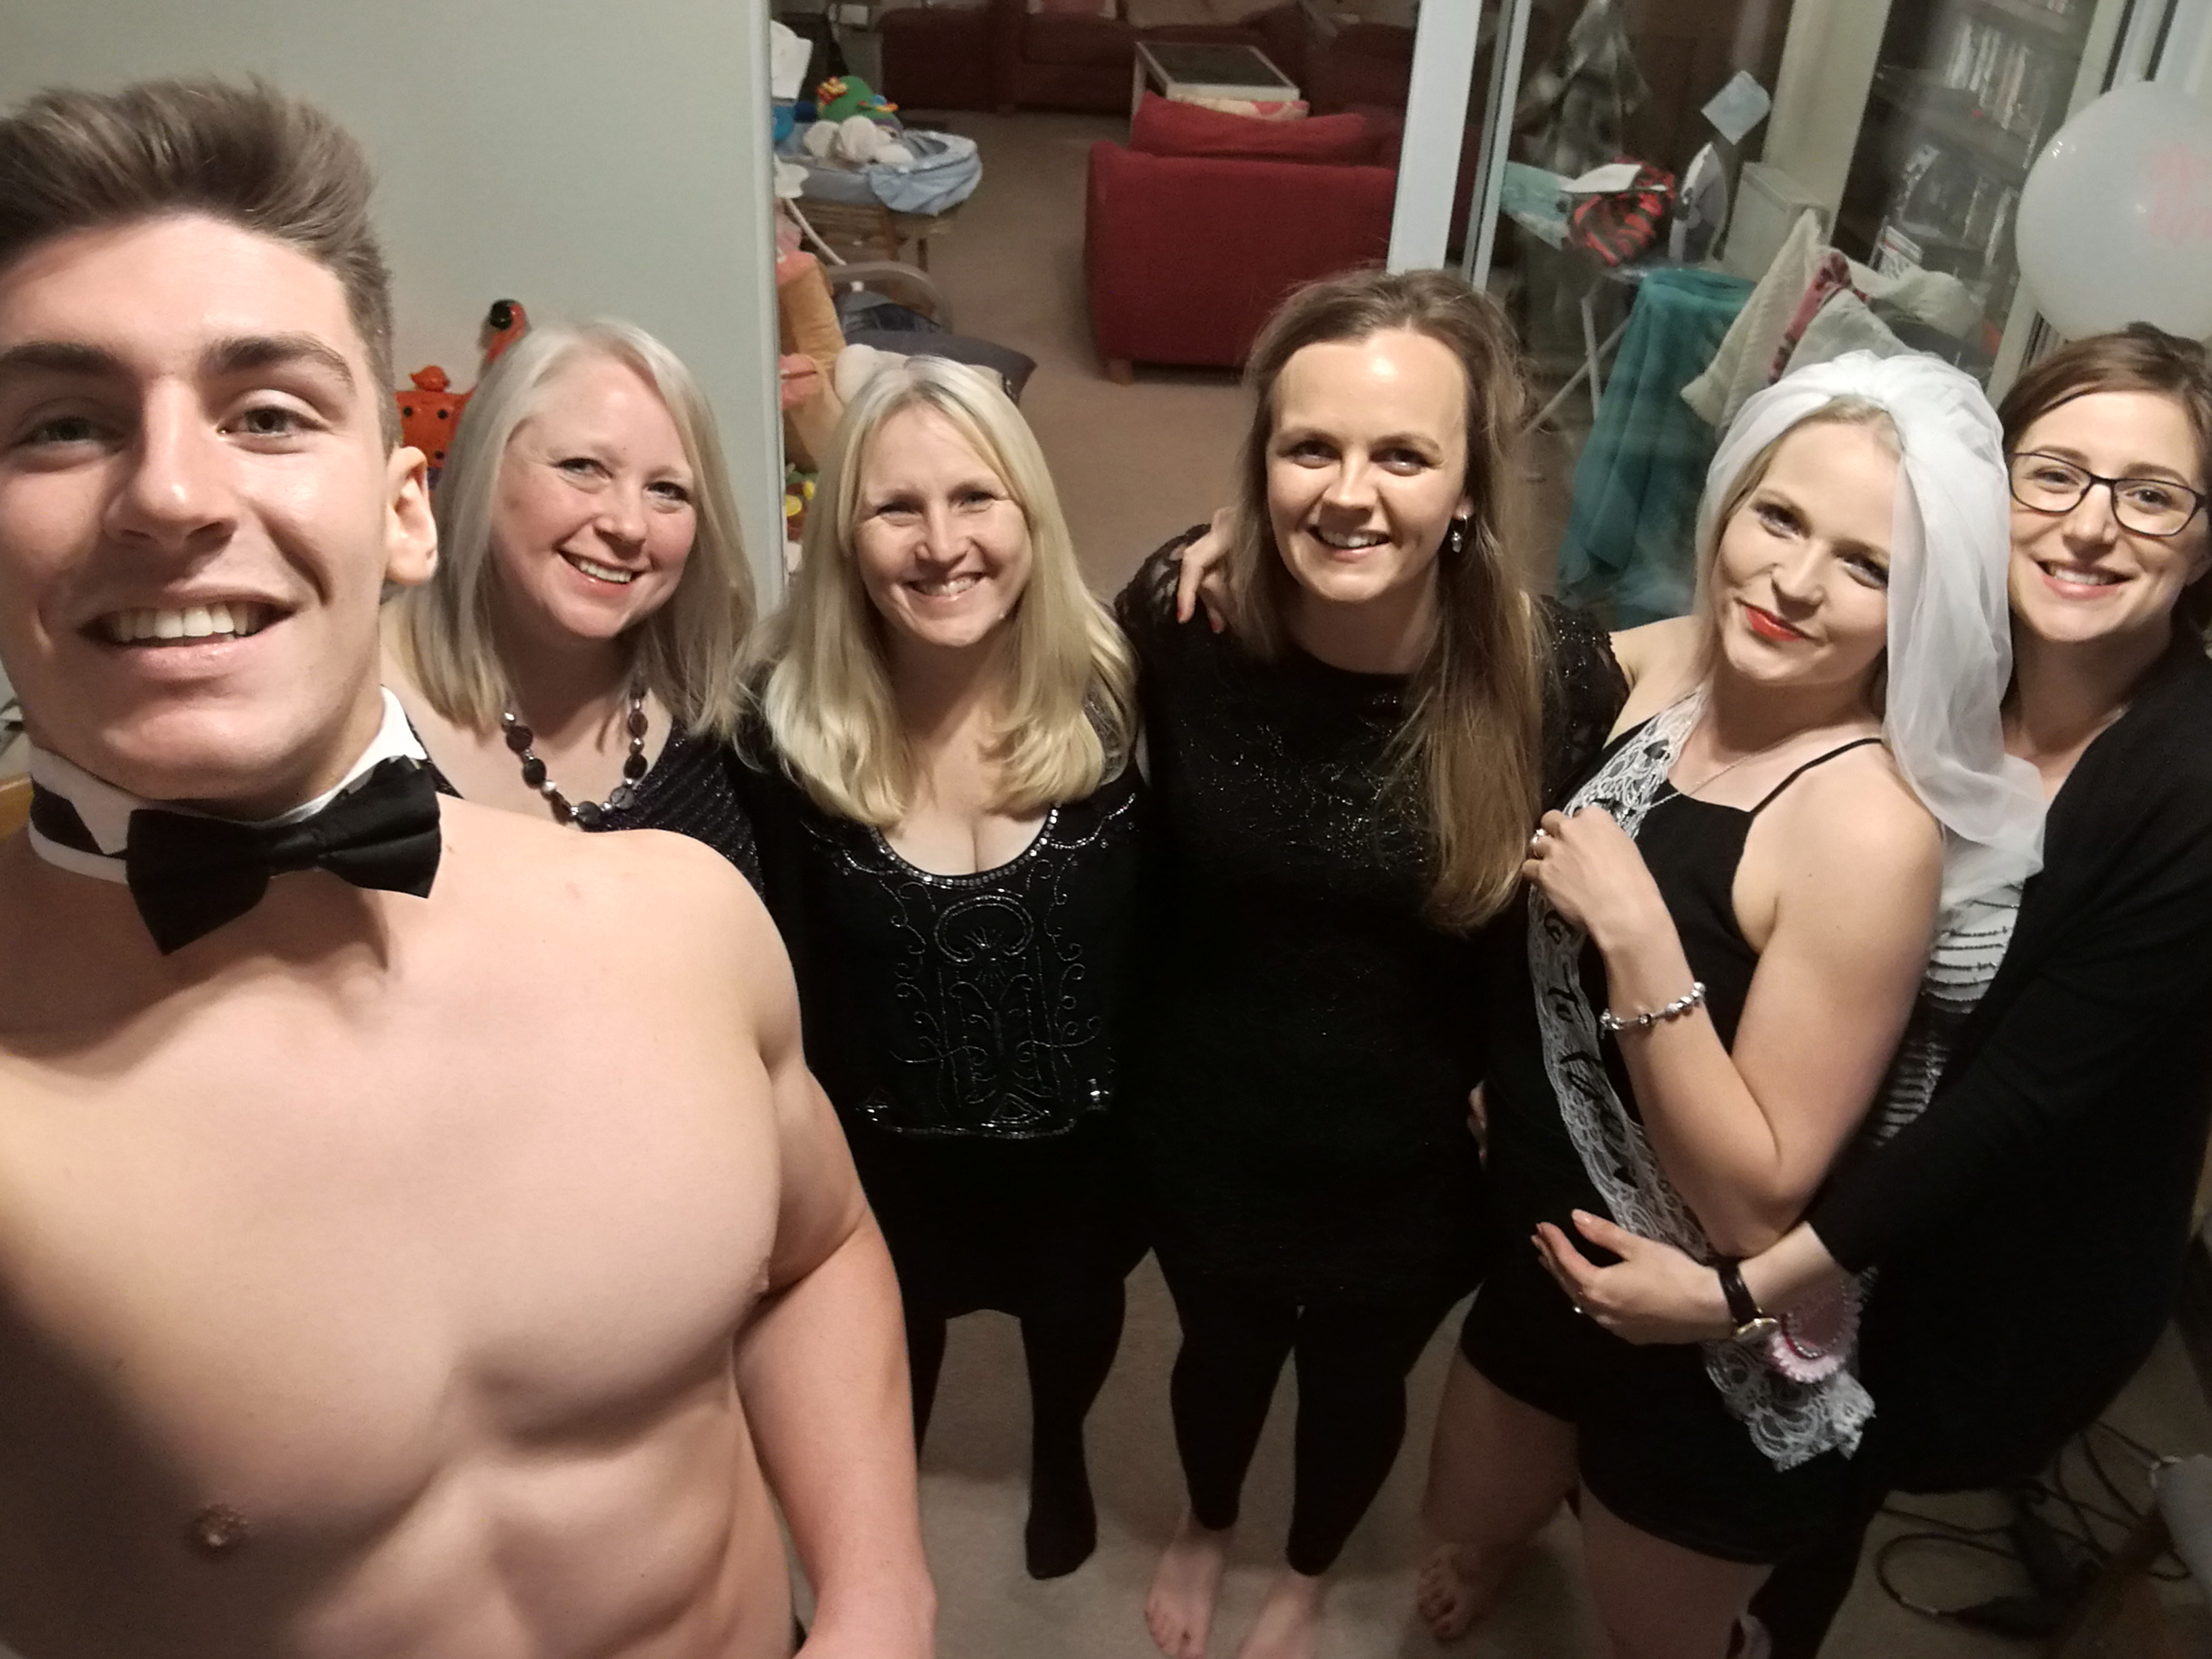 Butler in the buff group selfie